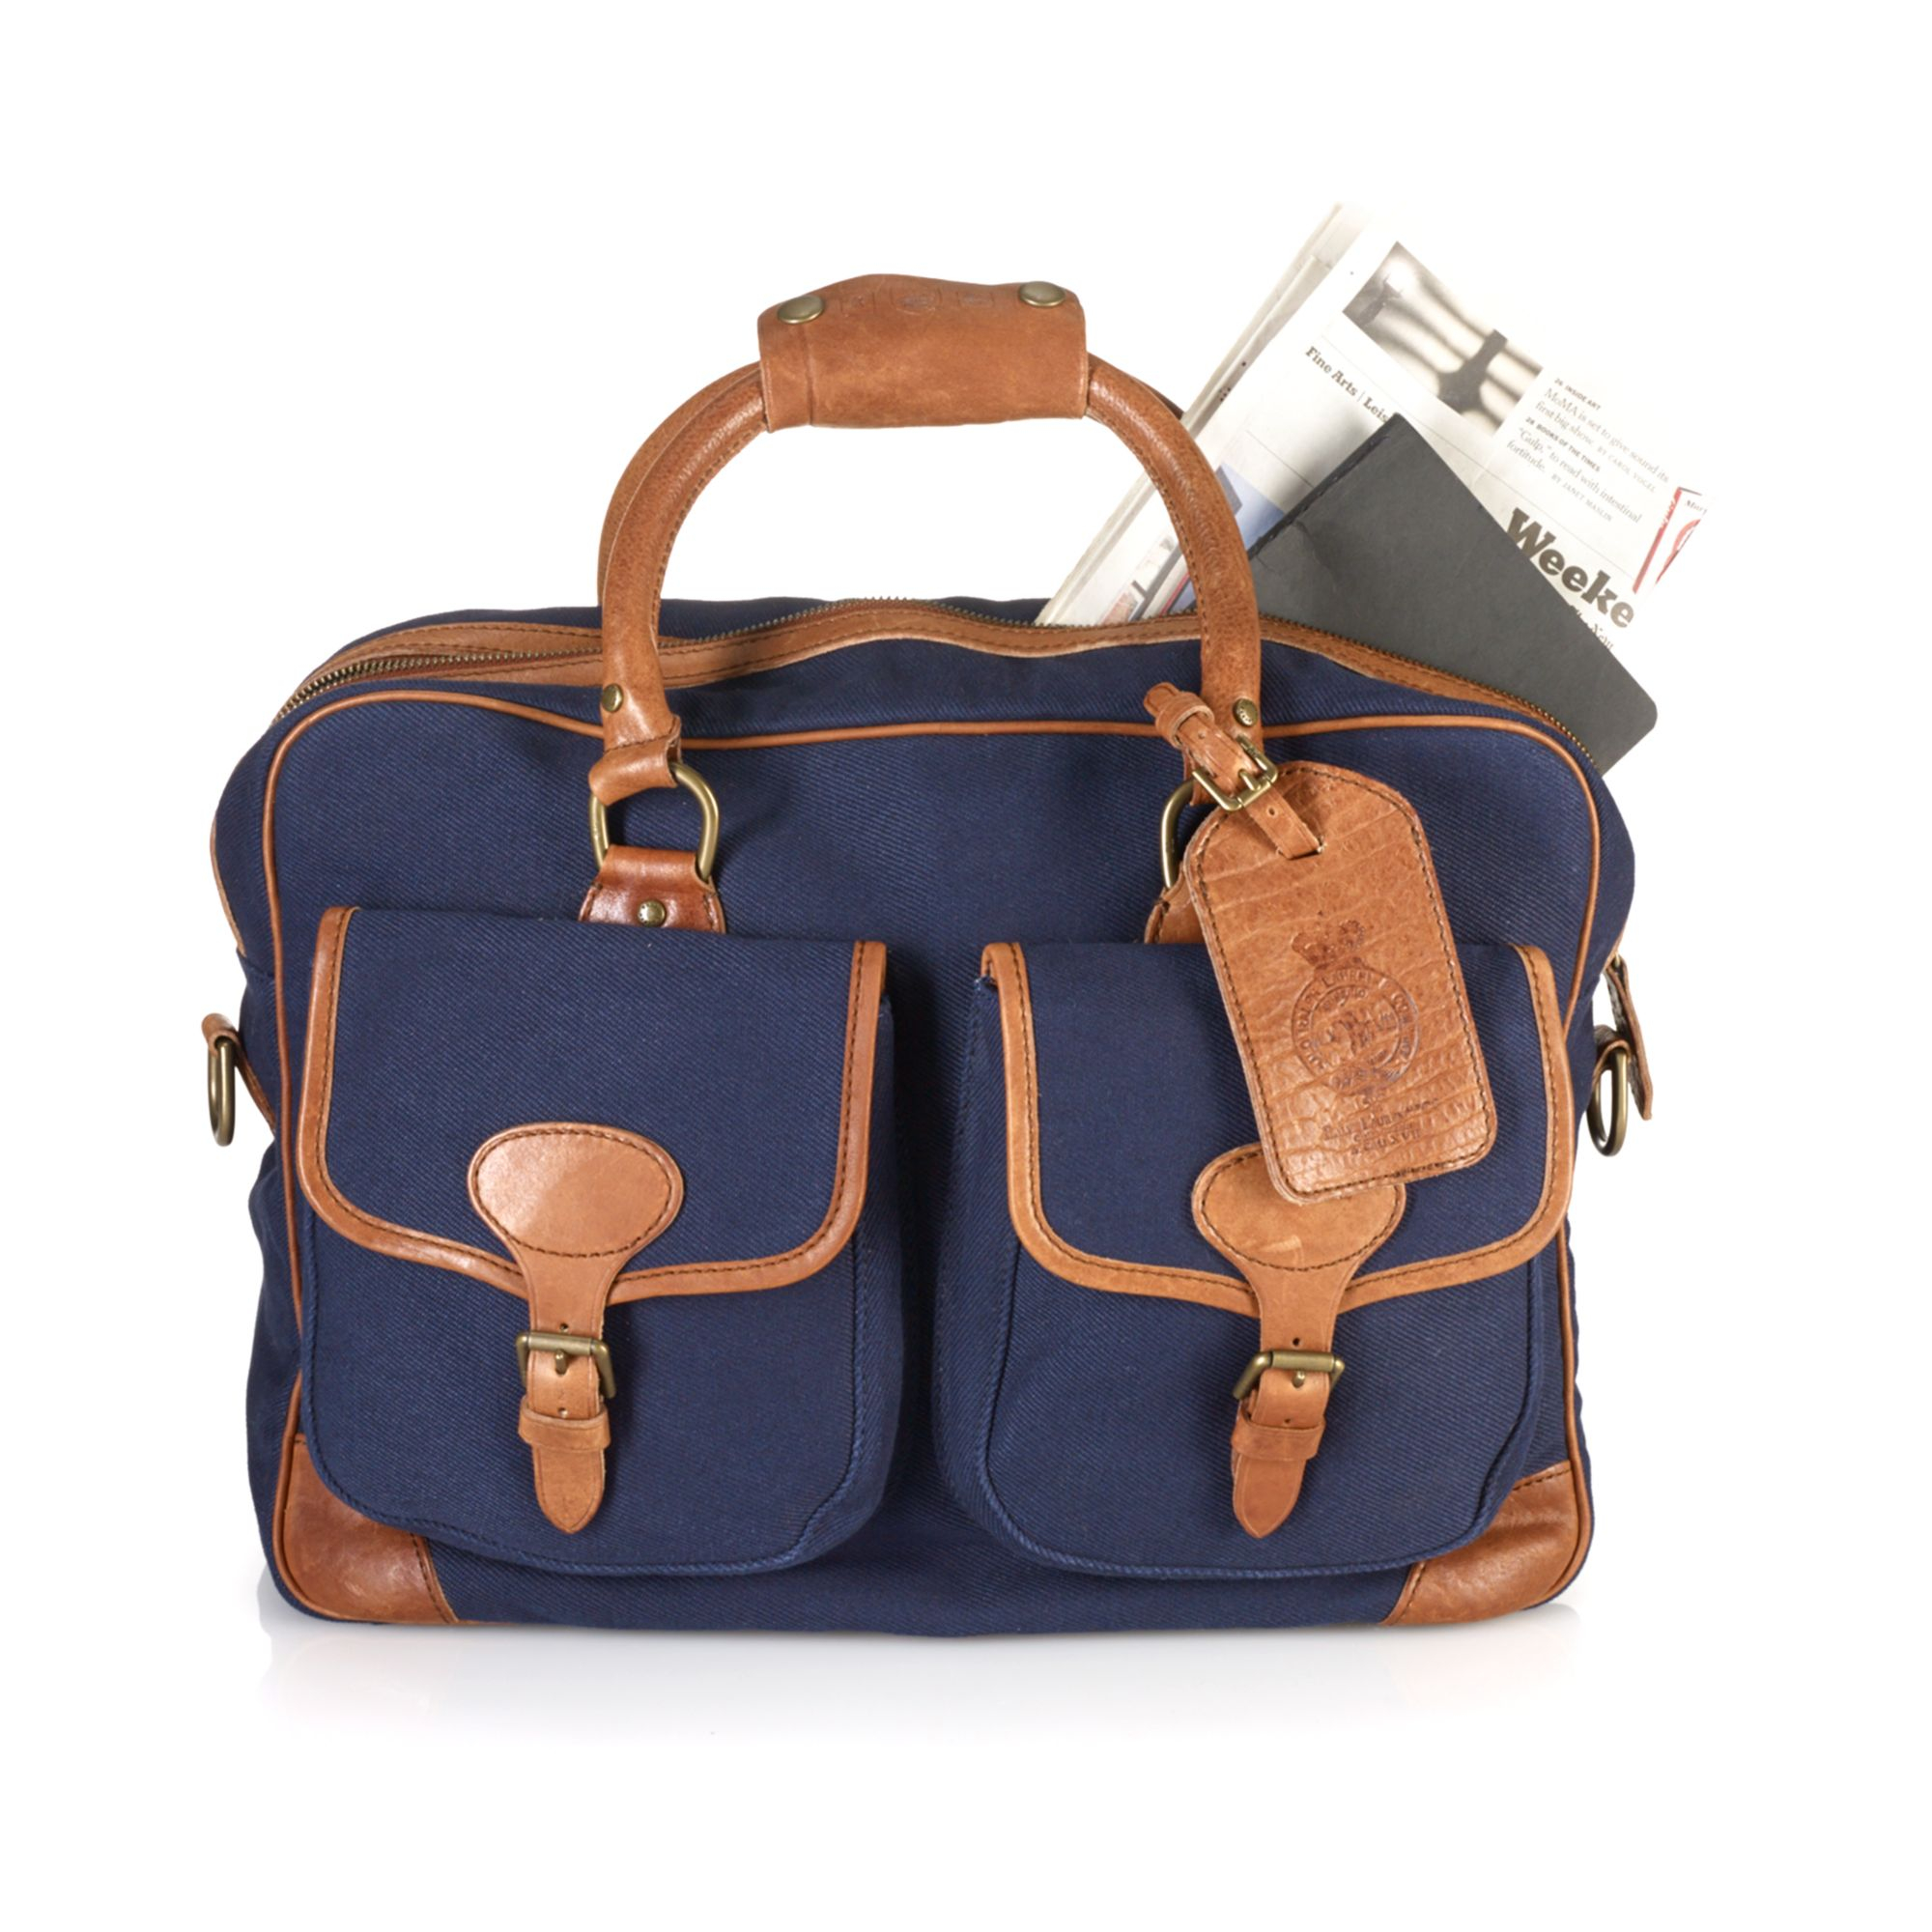 a4cbcec57a Lyst ralph lauren polo mens canvas commuter bag in blue for men jpg  2000x2000 Polo ralph